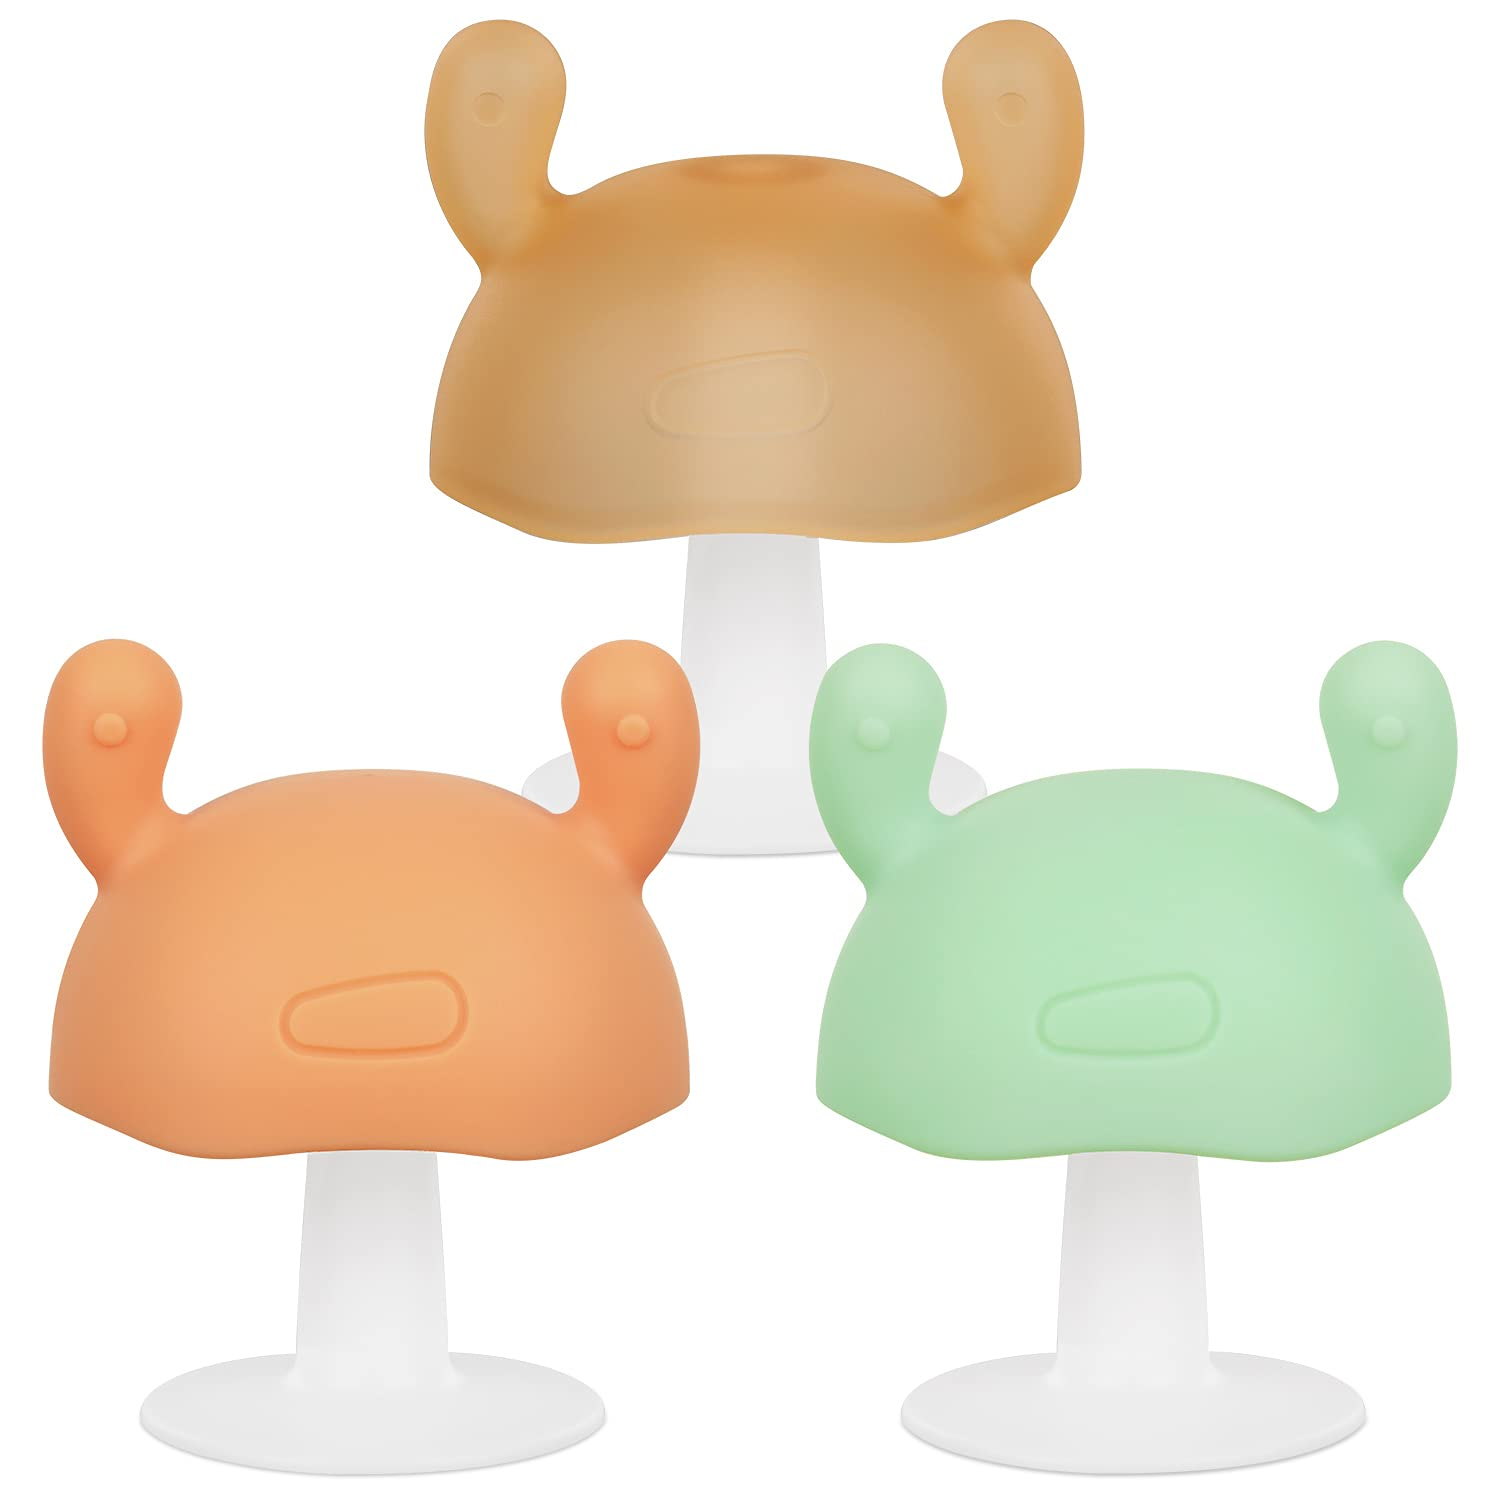 Eco inspired Baby Max 46% OFF Mushroom Teether Limited time for free shipping Frog Mushroo Toy - Silicone